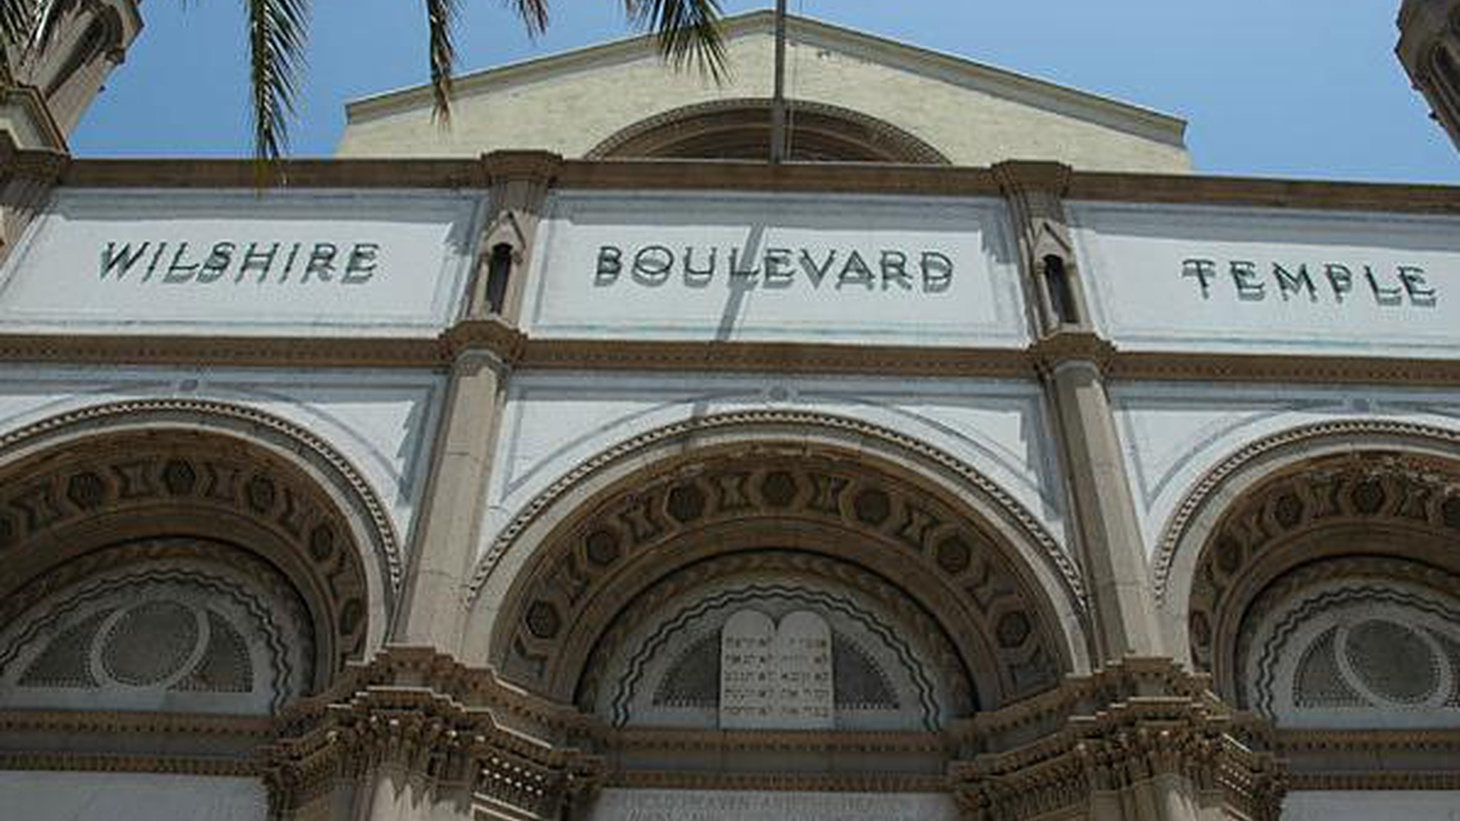 Wilshire Boulevard Temple is on America's Register of Historic Places. We get an update on its $175 million restoration and efforts to reach beyond LA's Jewish community.